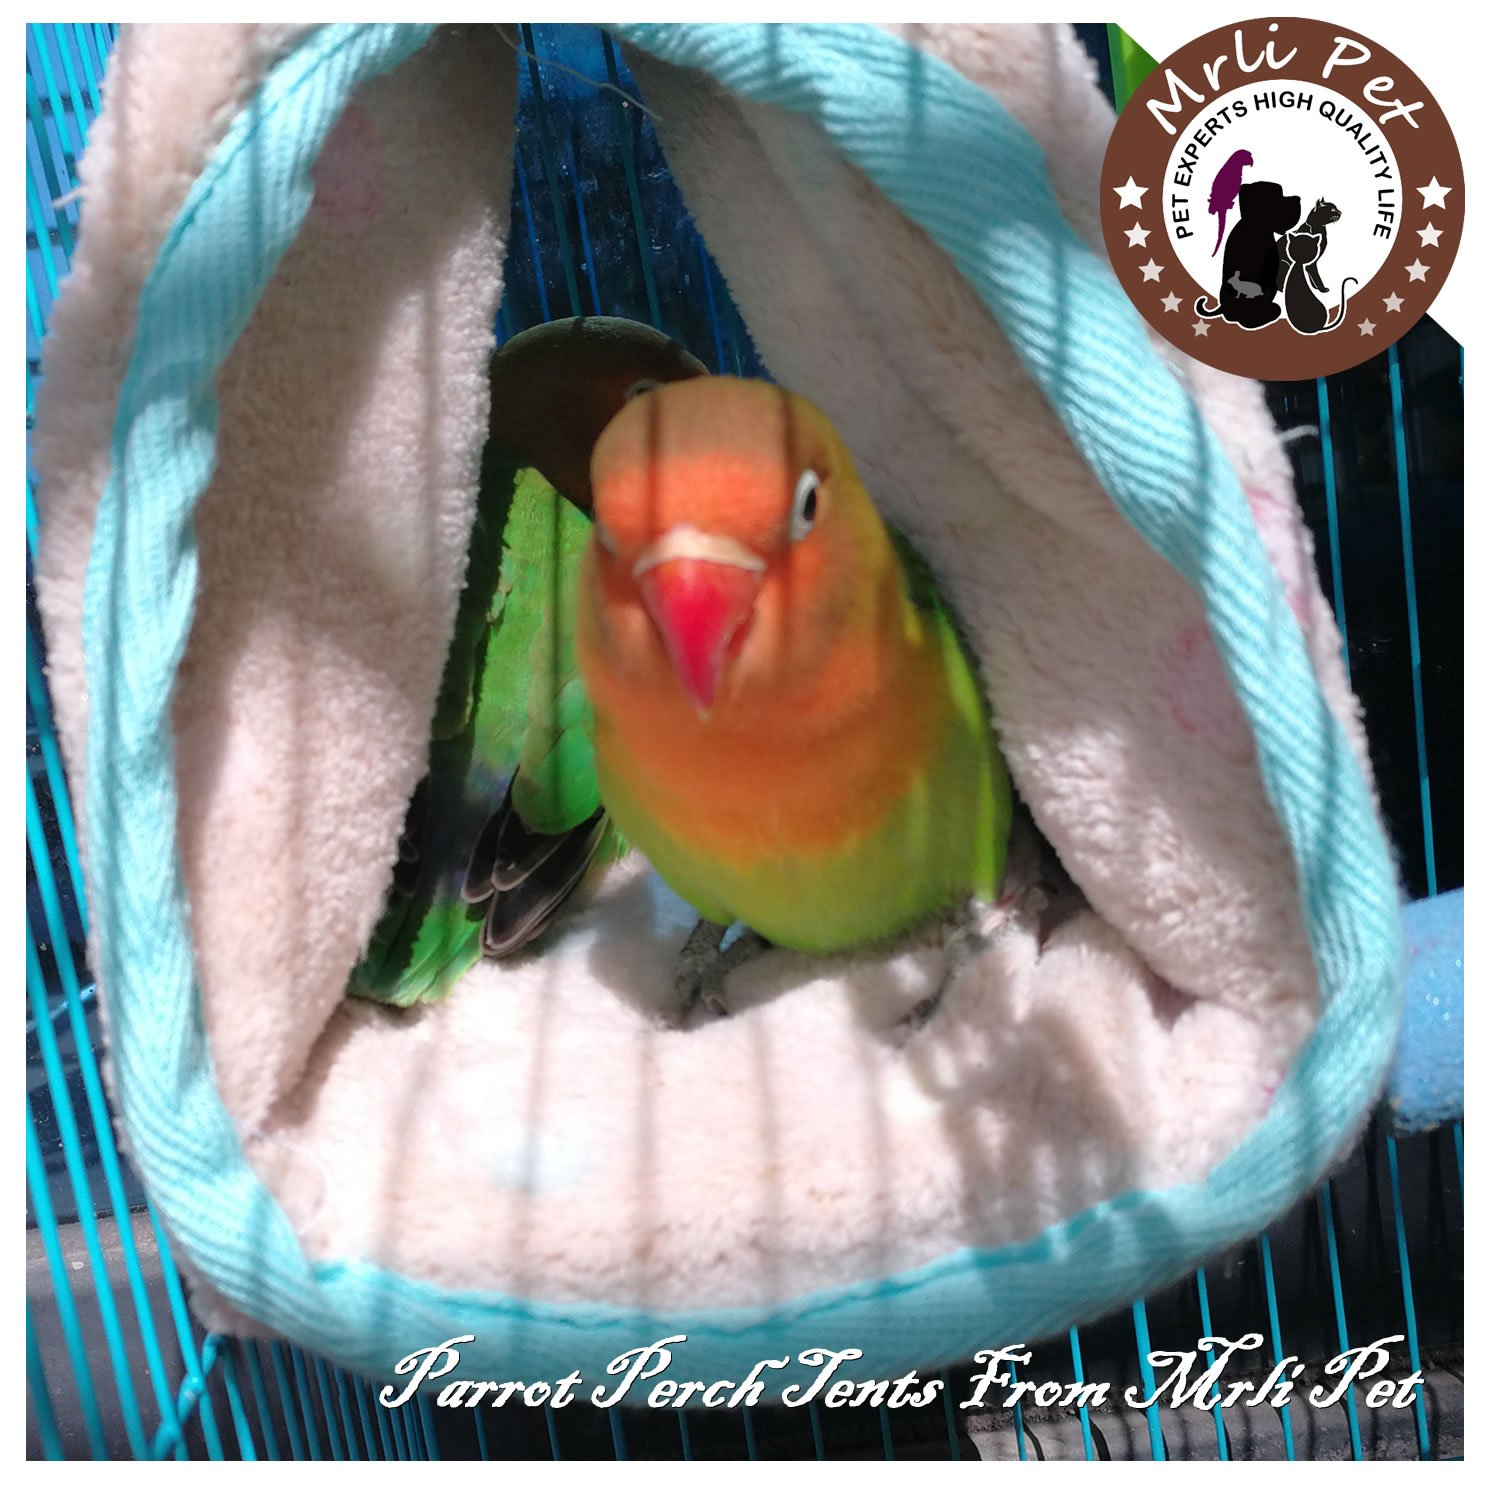 Parrot Perch Tents, Mrlipet Winter Warm Bird Animal Plush Snuggle Hammock Hanging Snuggle Cave Happy Hut Hideaway Small Mrli Pet